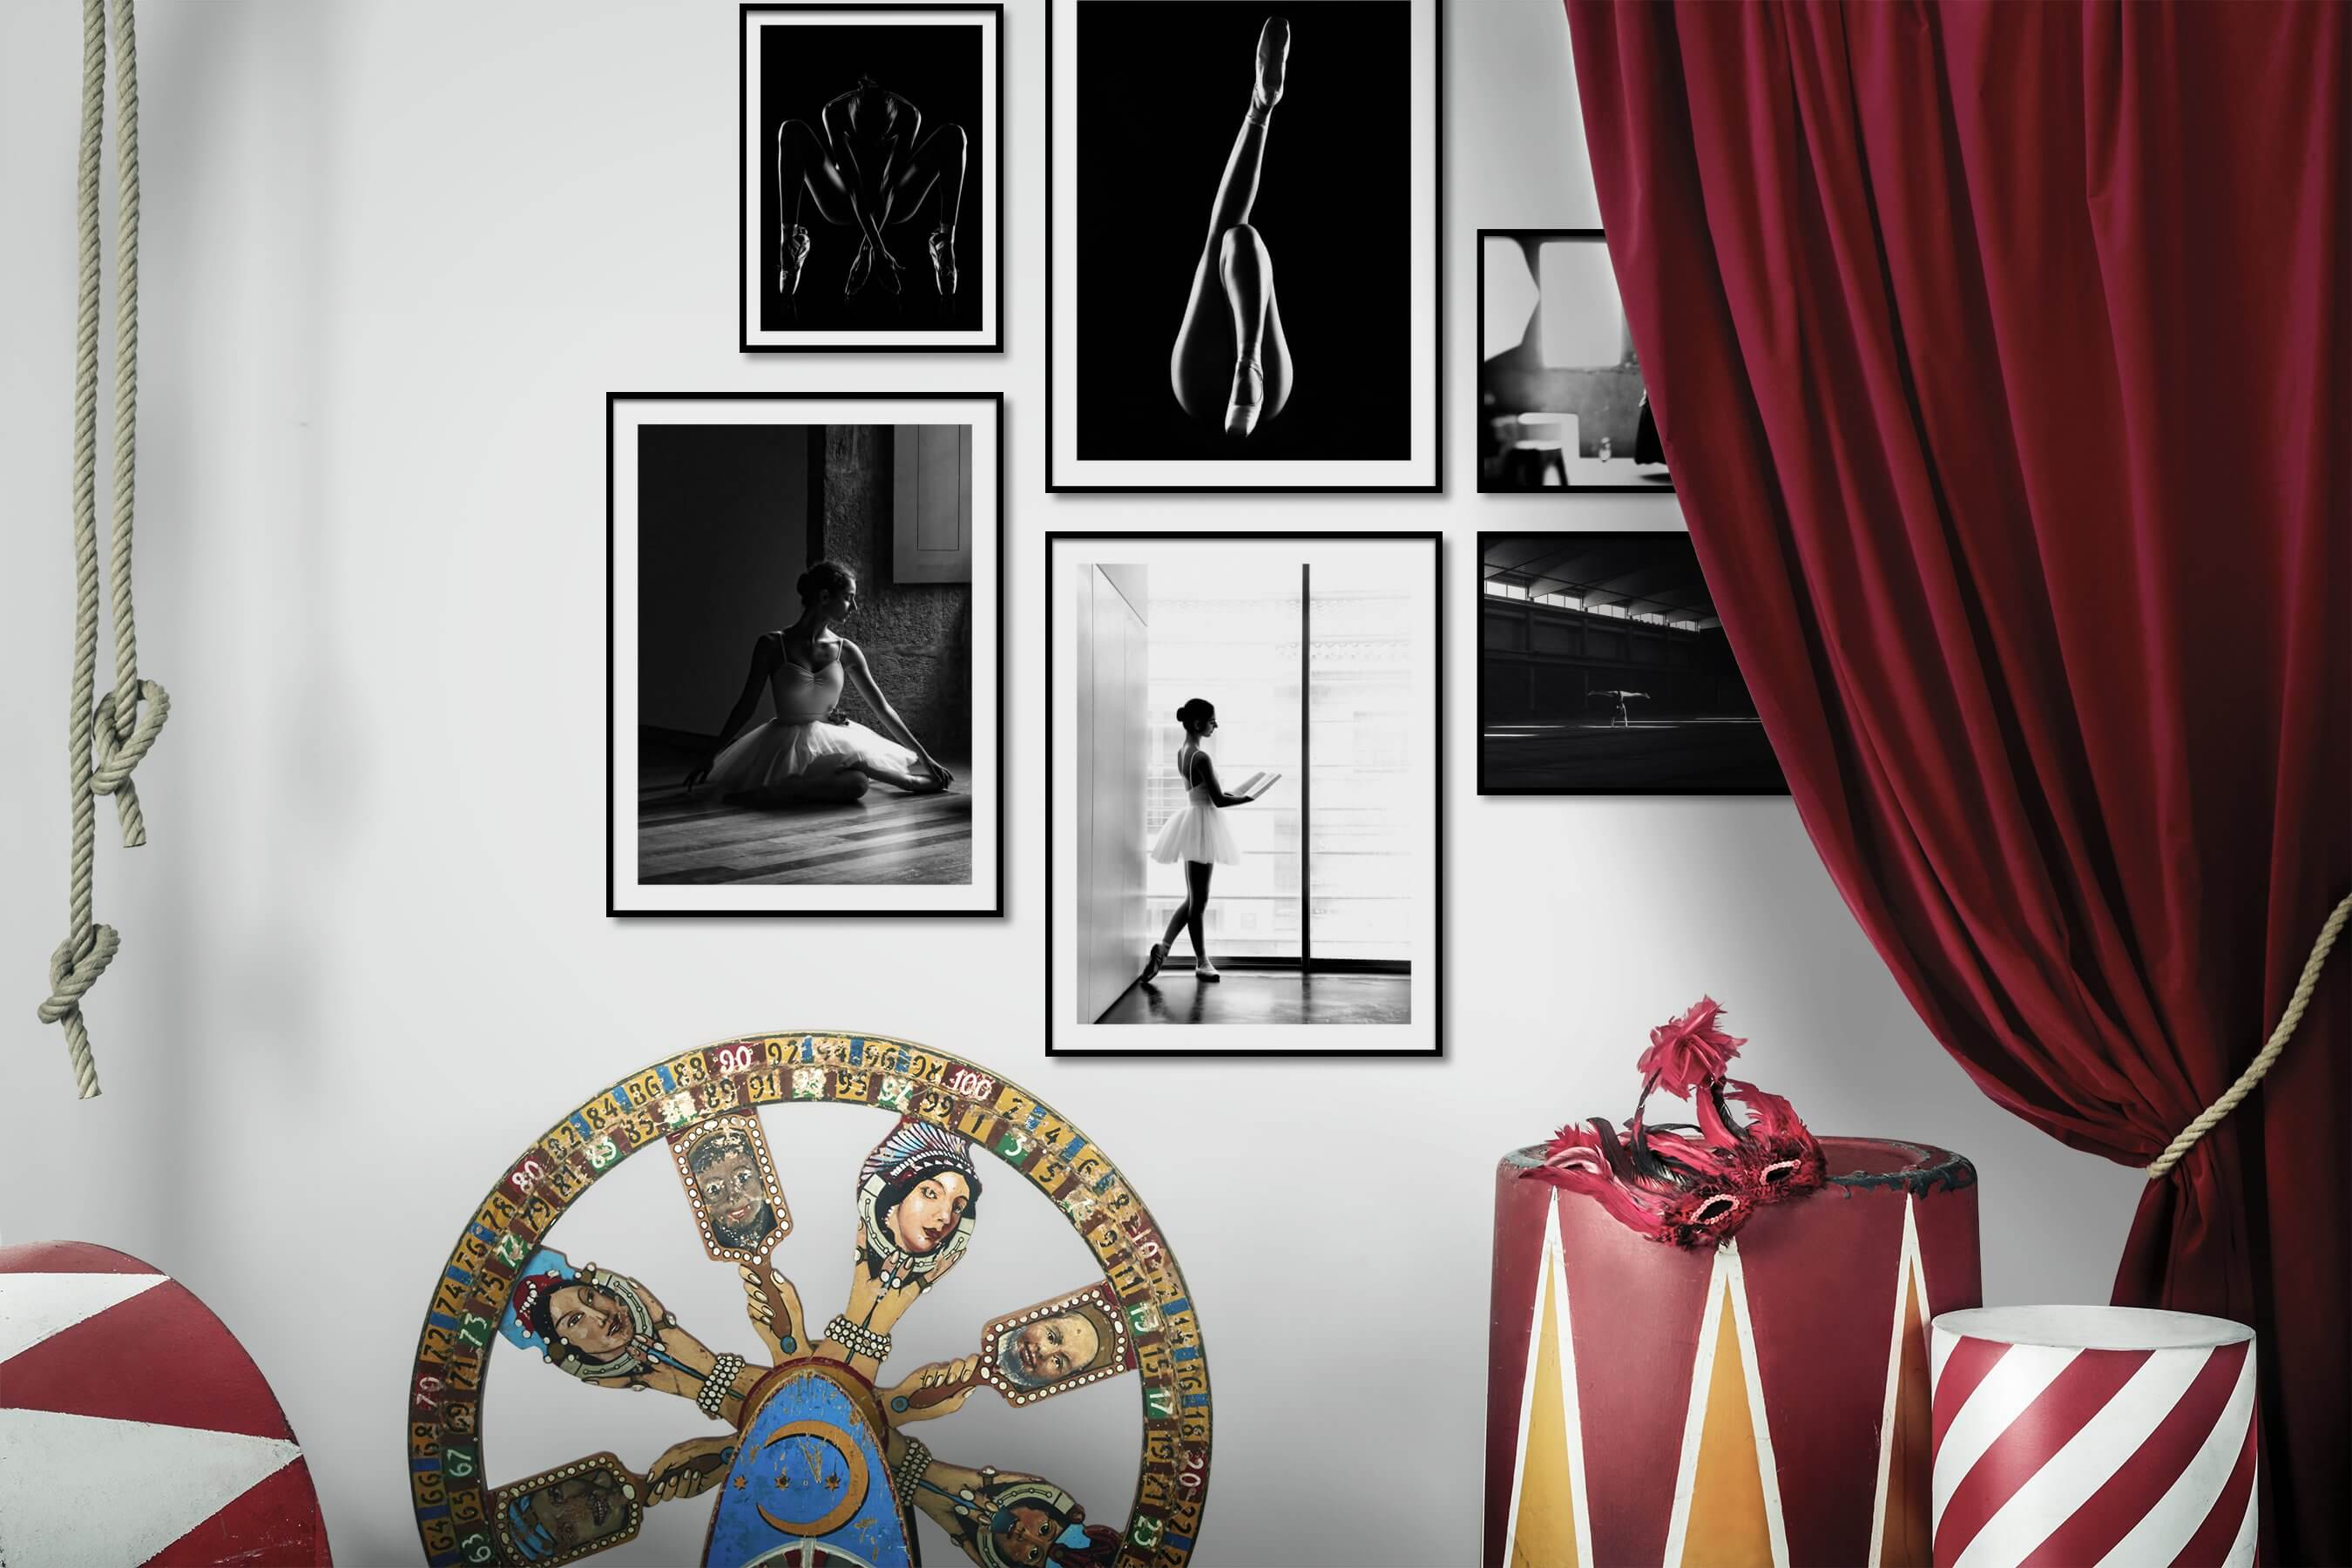 Gallery wall idea with six framed pictures arranged on a wall depicting Fashion & Beauty, Black & White, For the Minimalist, and Dark Tones